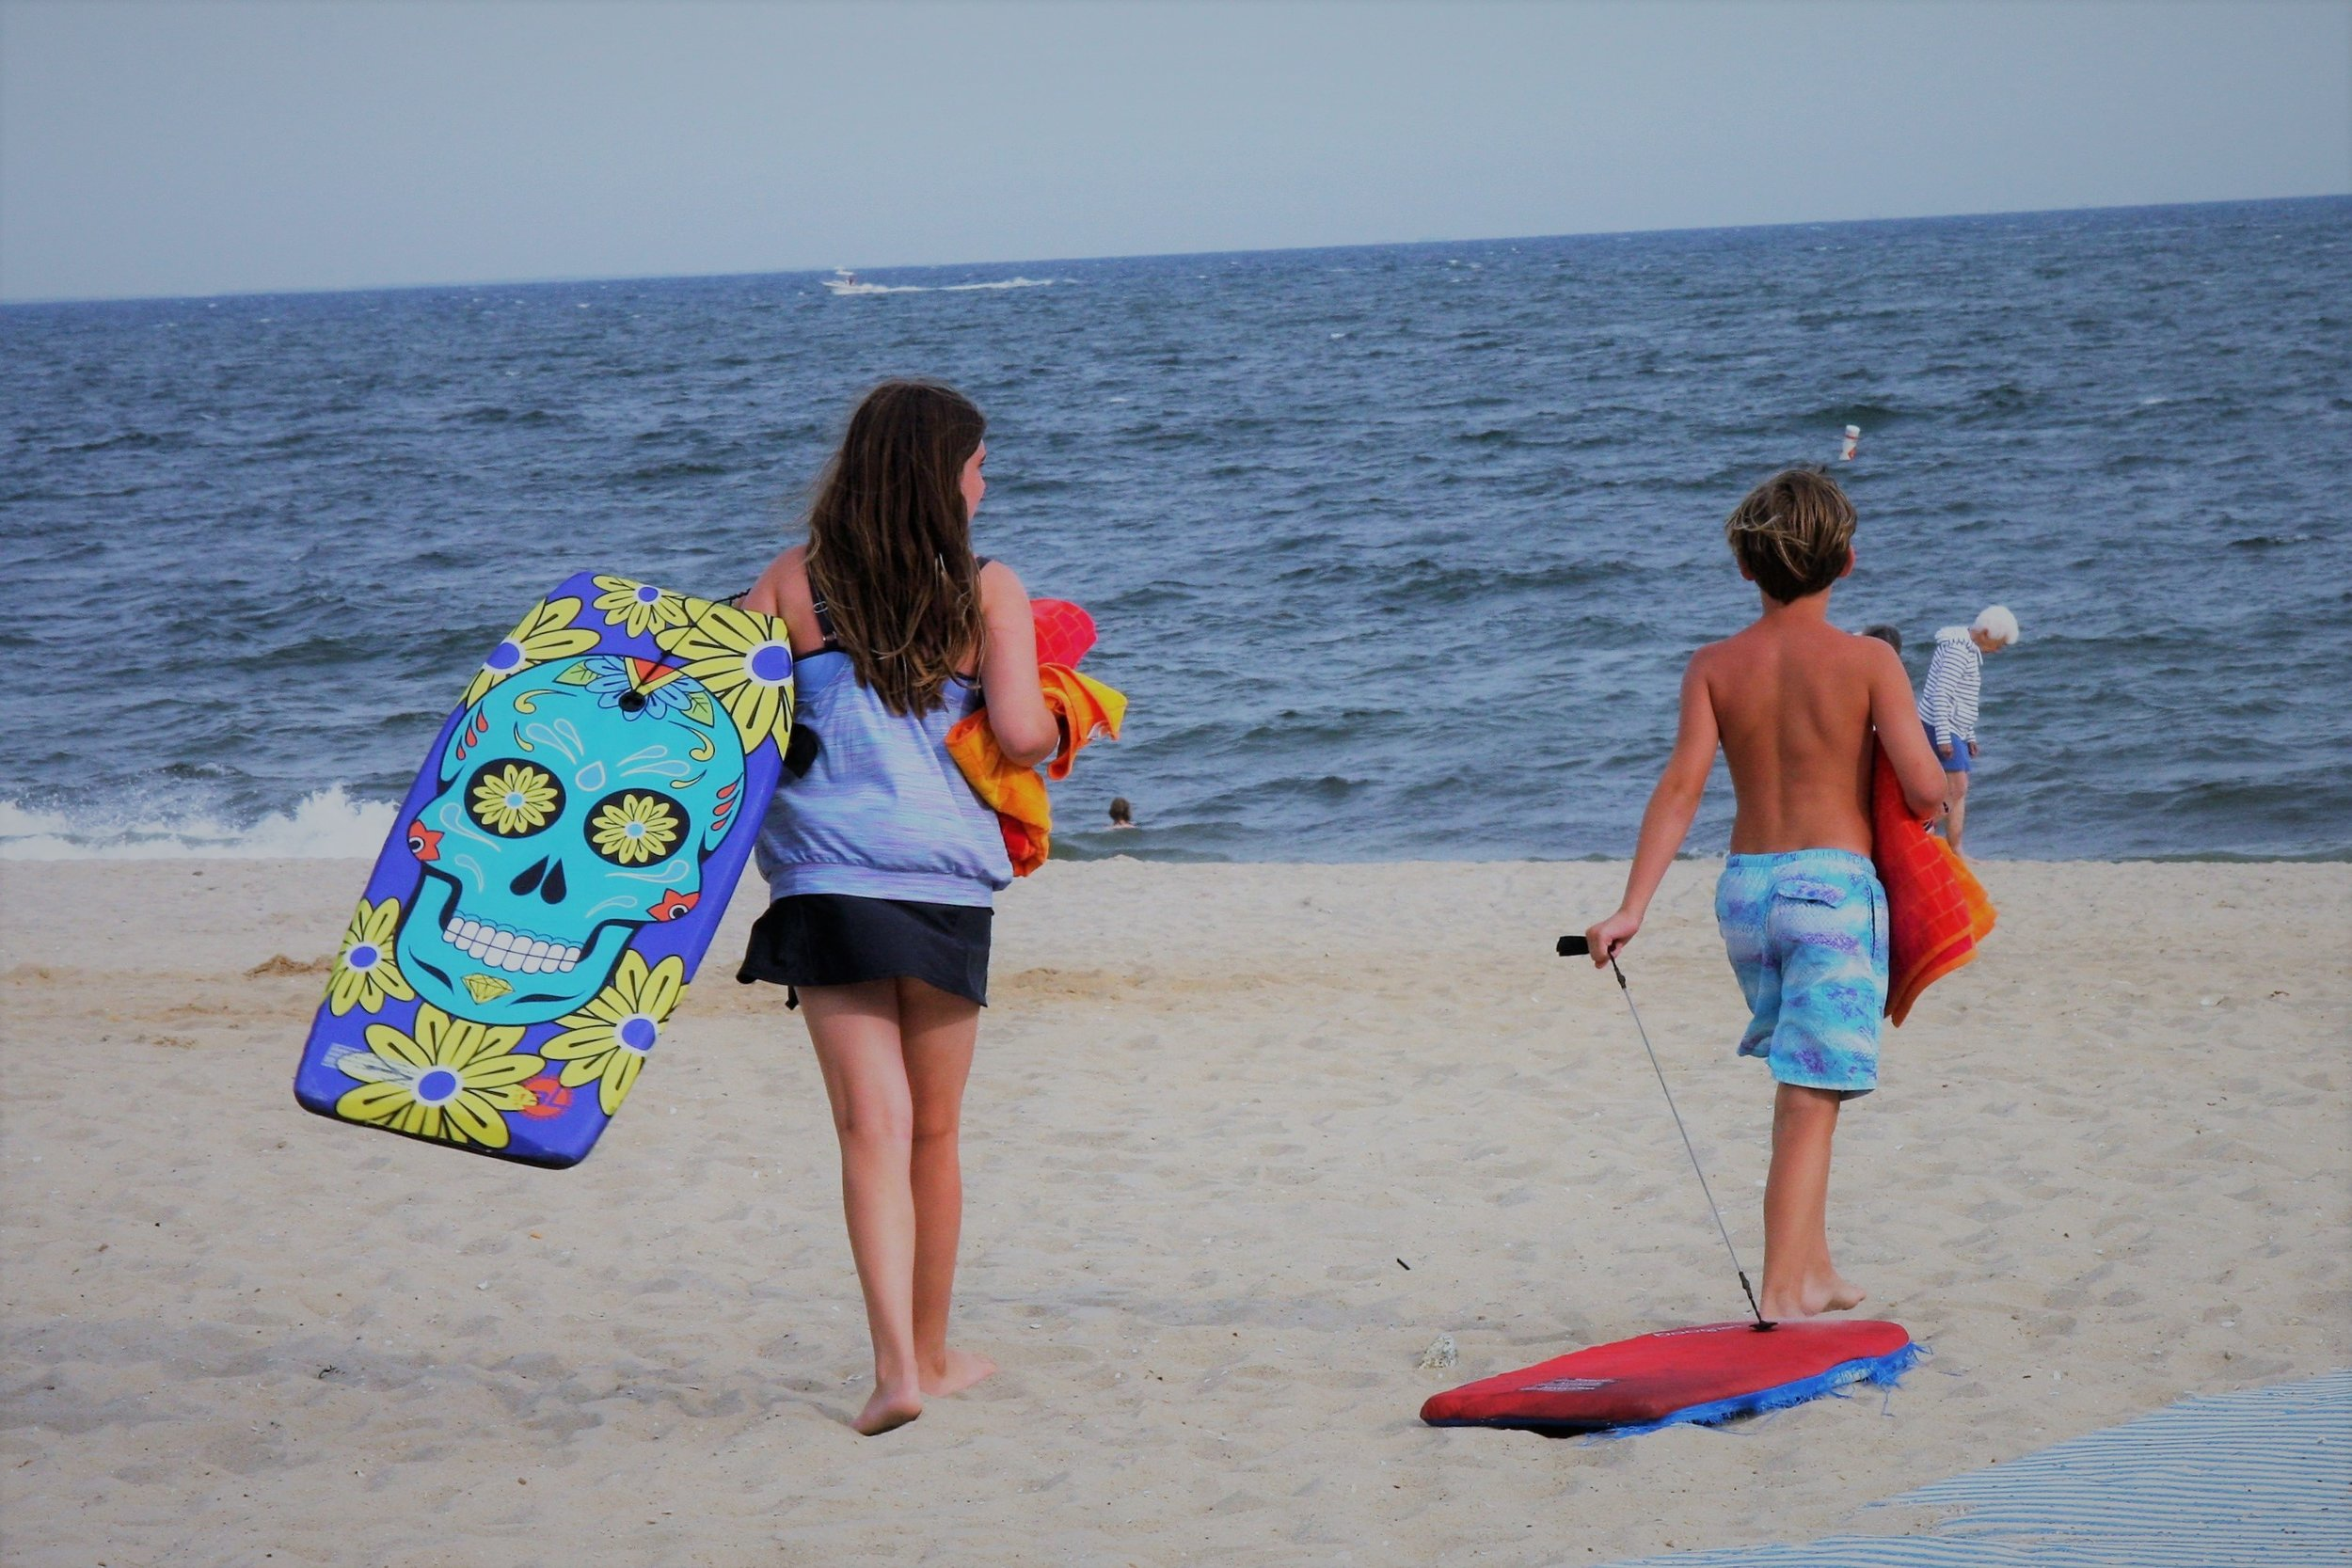 fun in the sun with boogies boards.JPG